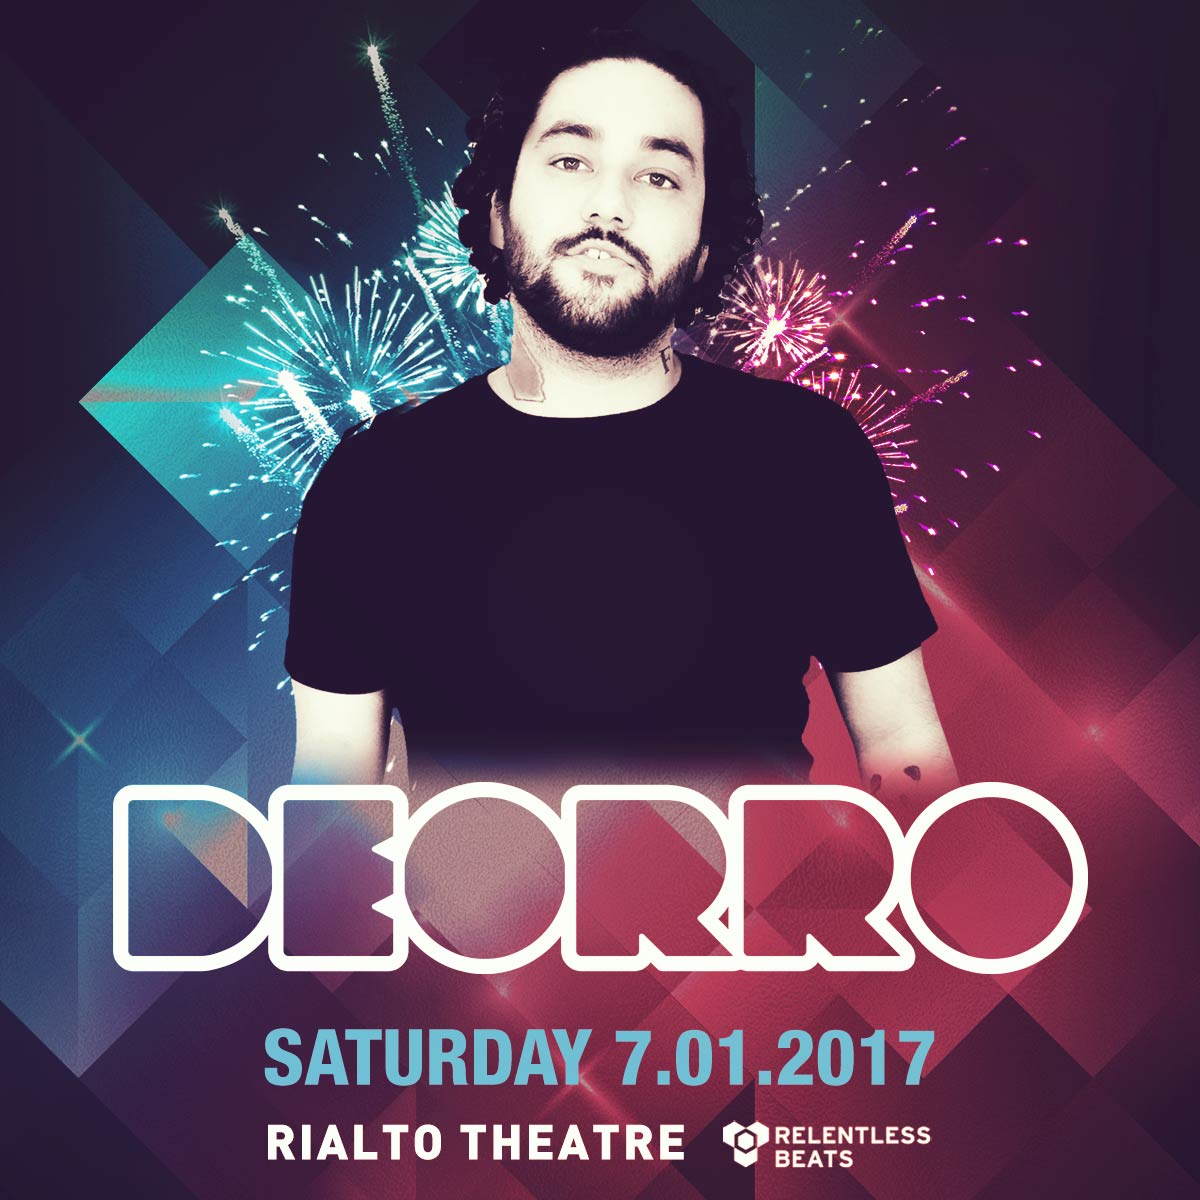 Flyer for Deorro